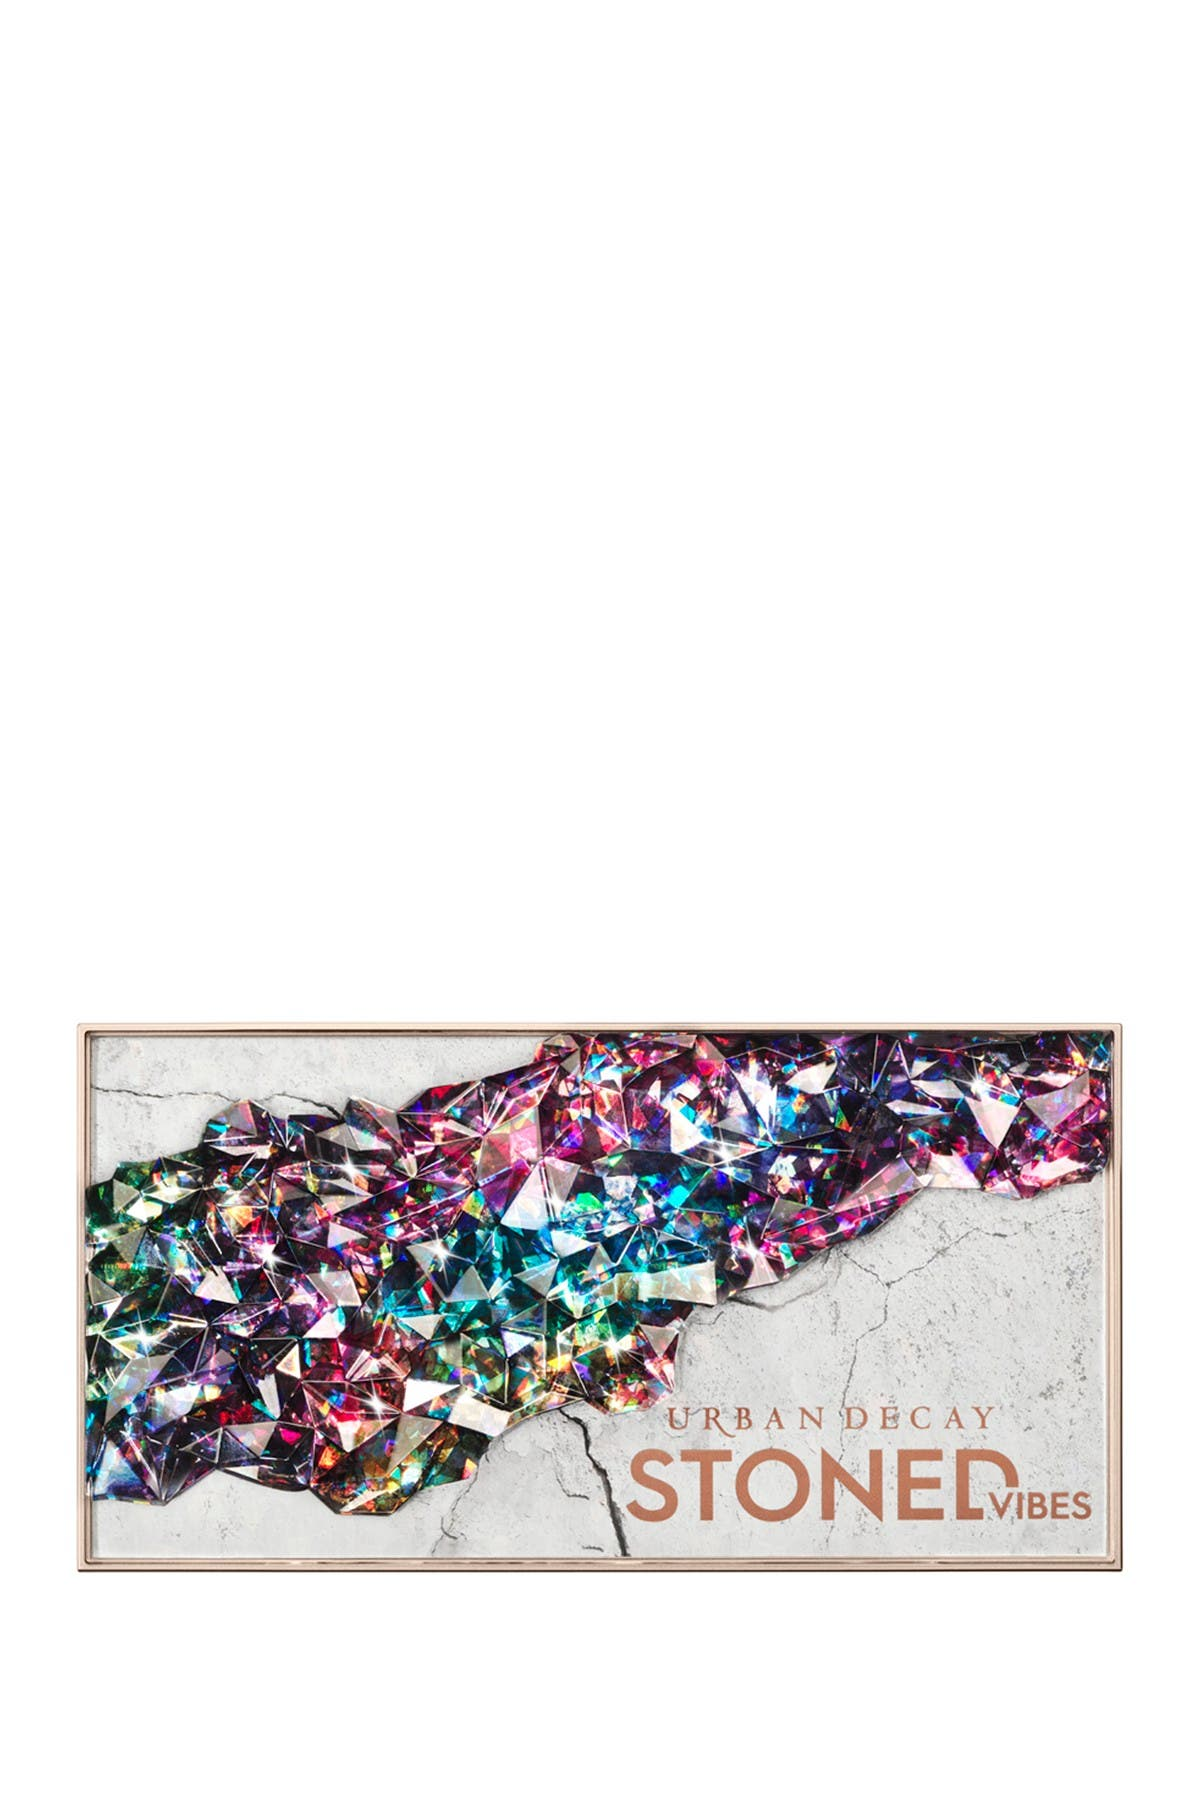 Image of Urban Decay Stoned Eyeshadow Palette